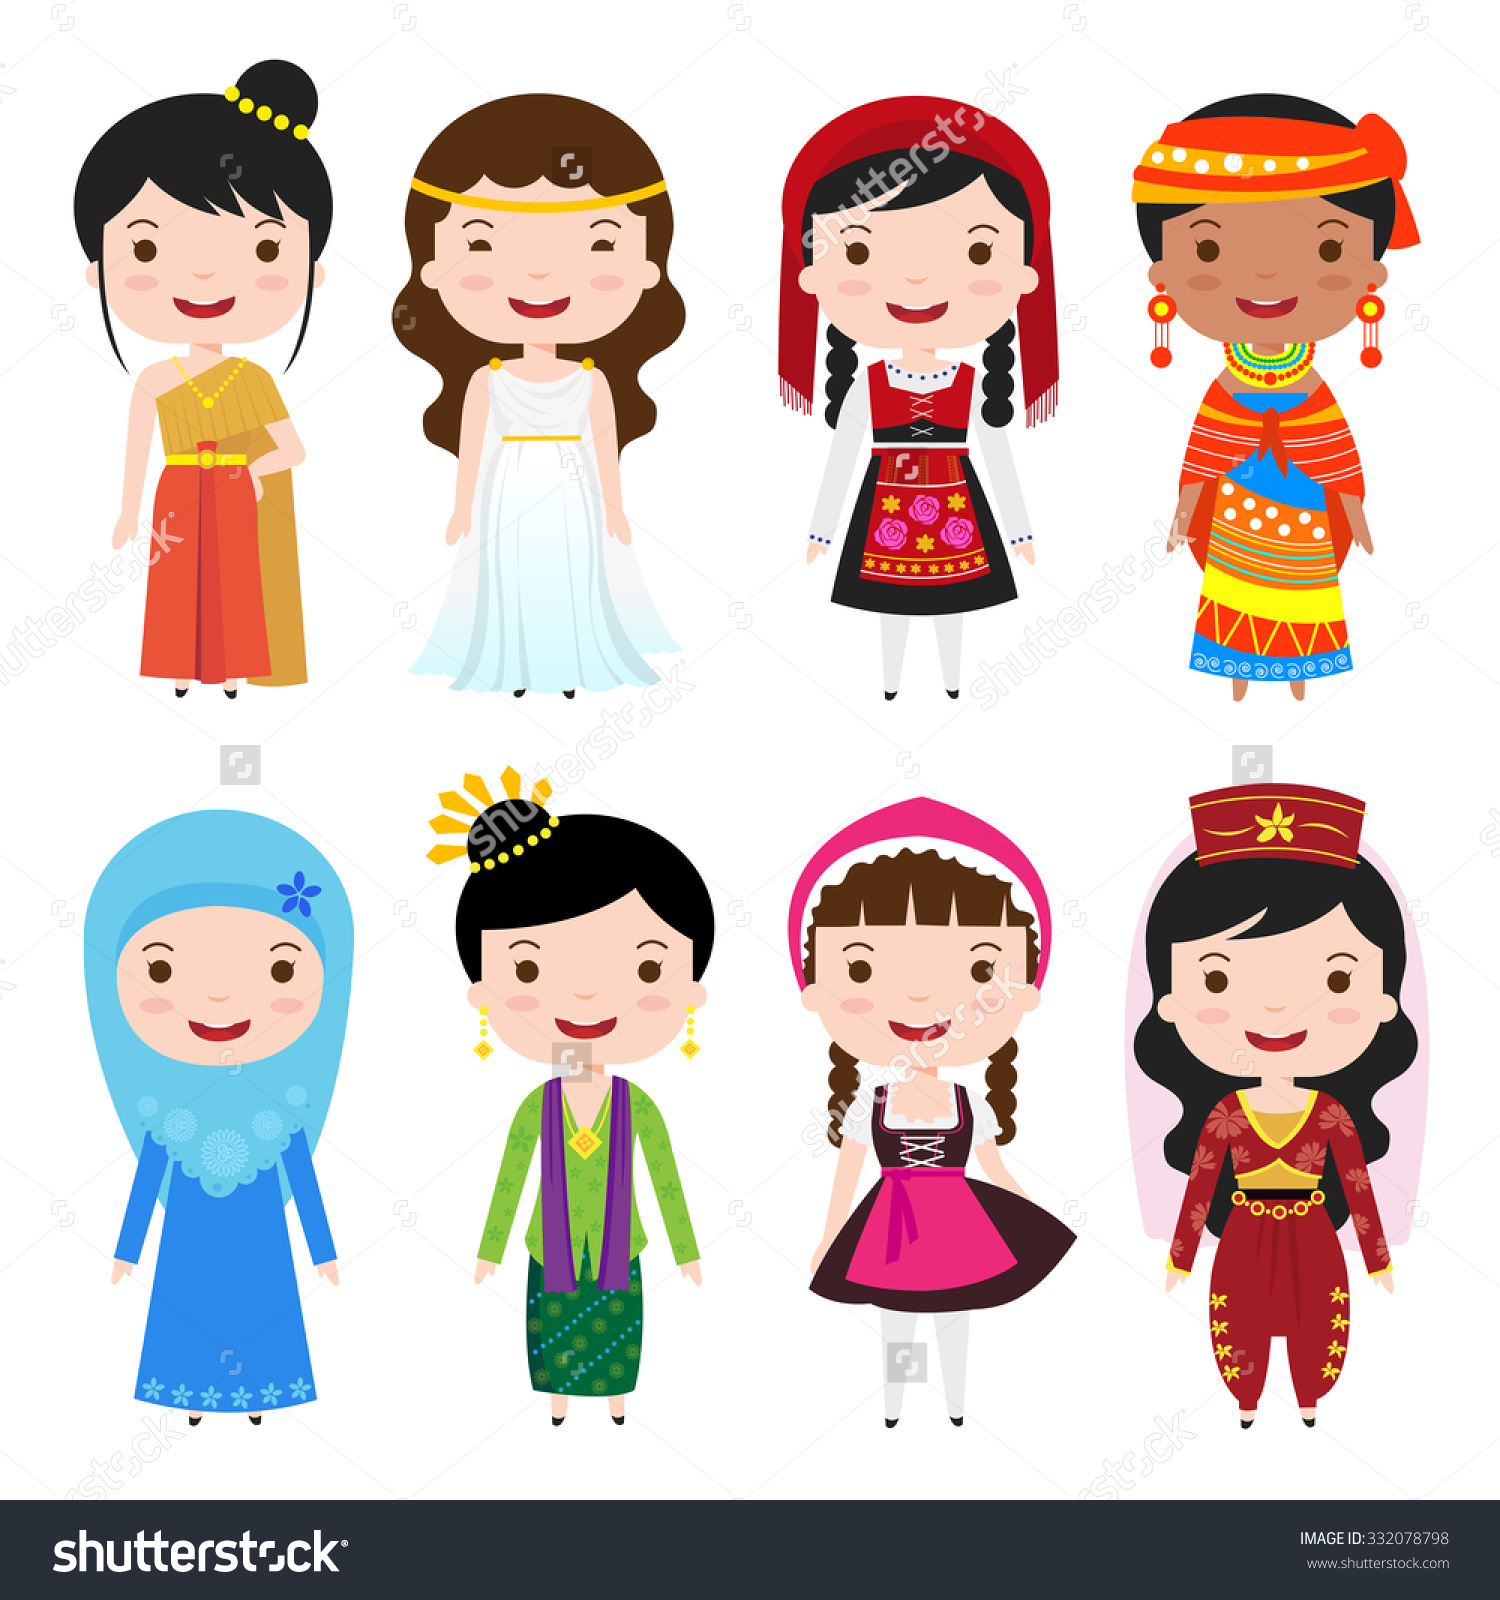 National Dress clipart #6